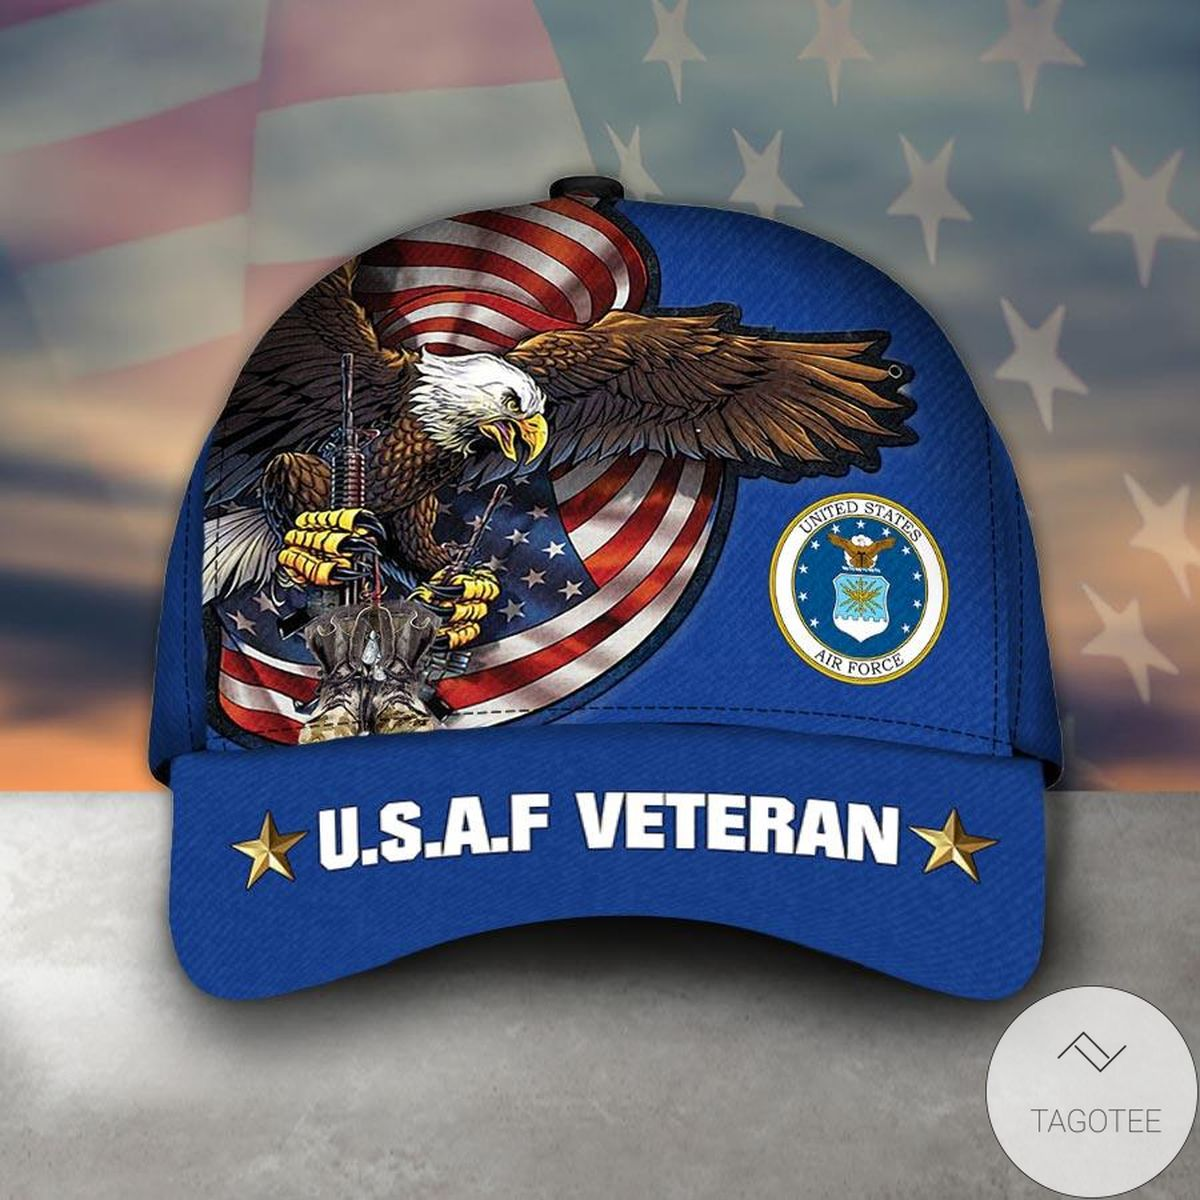 Buy In US Armed Forces Usaf Air Forces Veteran Military Soldier Cap